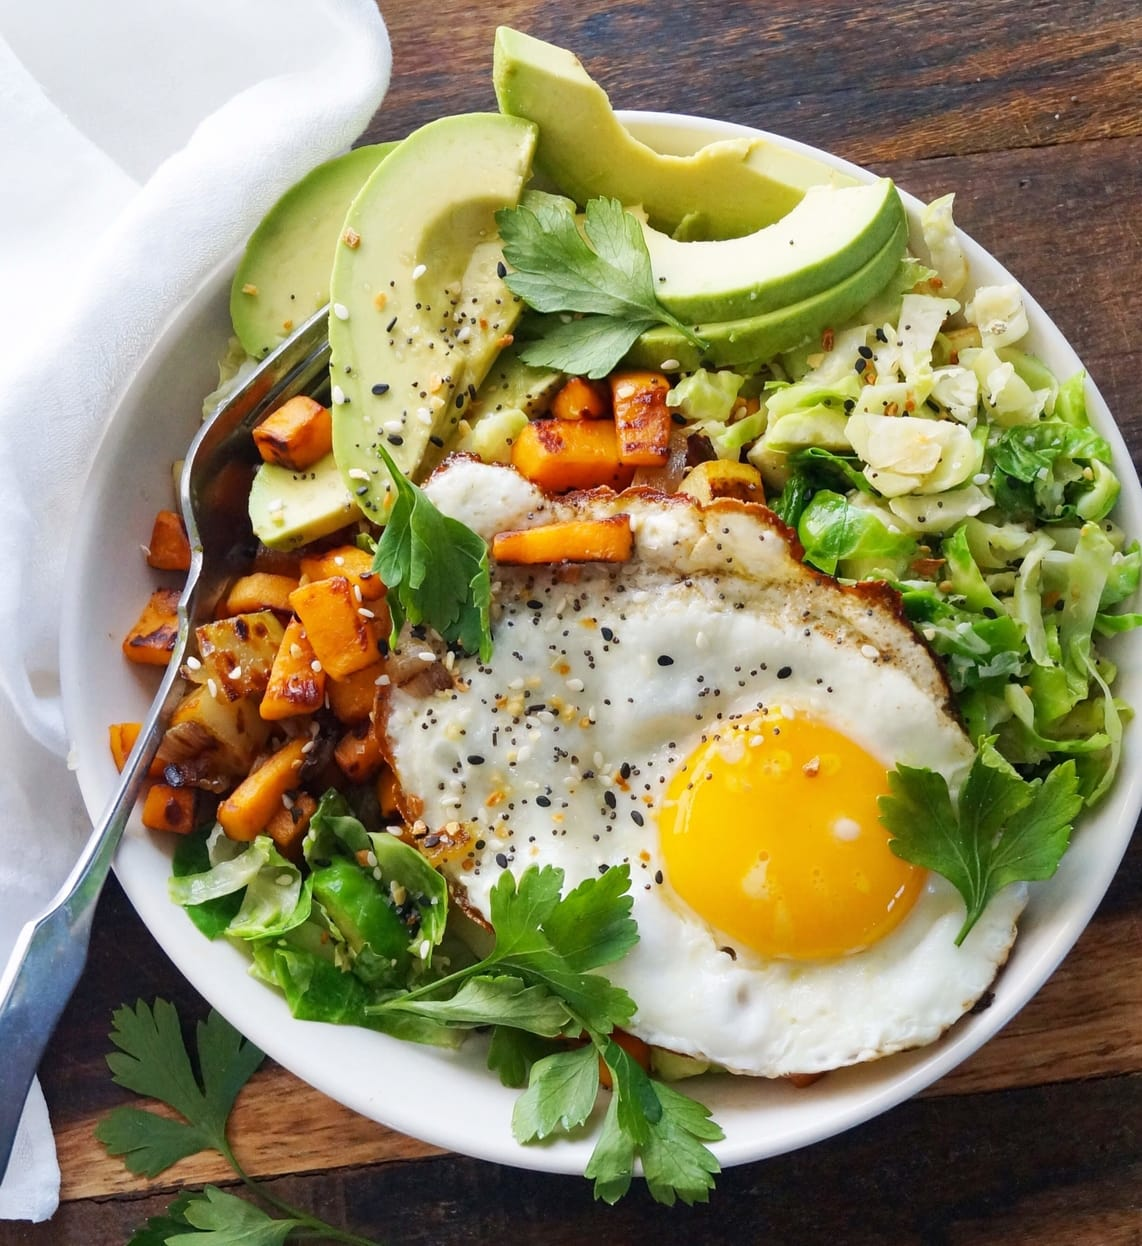 Top down of a white Whole30 breakfast bowl on a wooden board filled with diced and roasted potatoes, sliced Brussels sprouts, a fried egg, and sliced avocado.